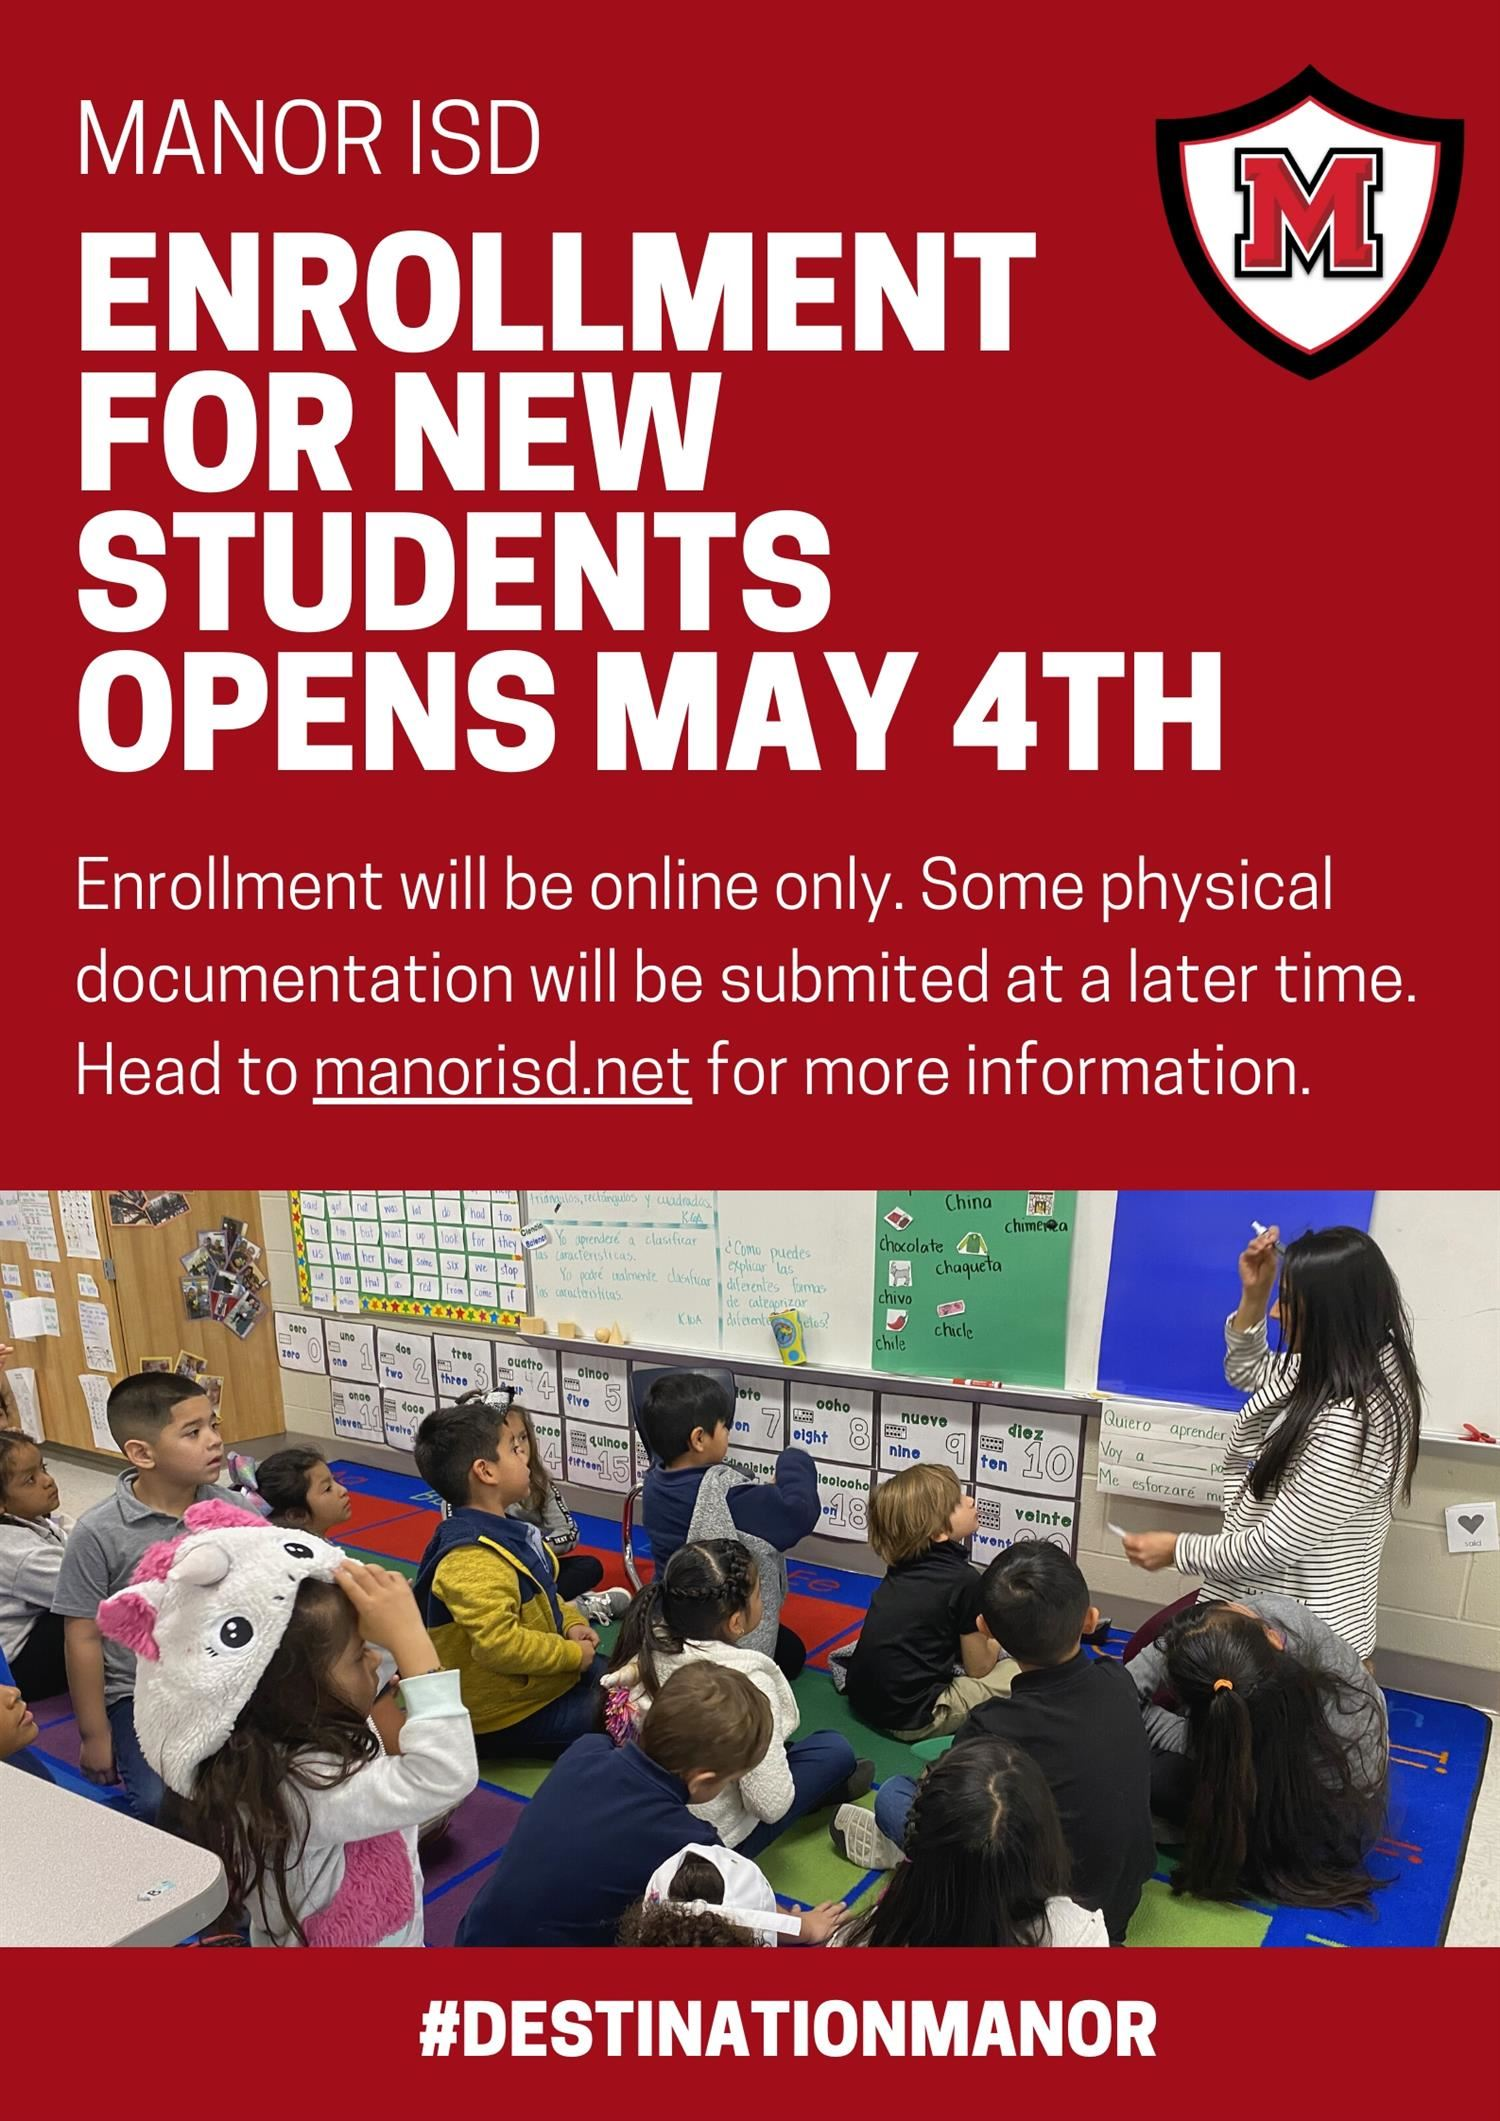 MISD News Student Enrollment Begins Online May 4th